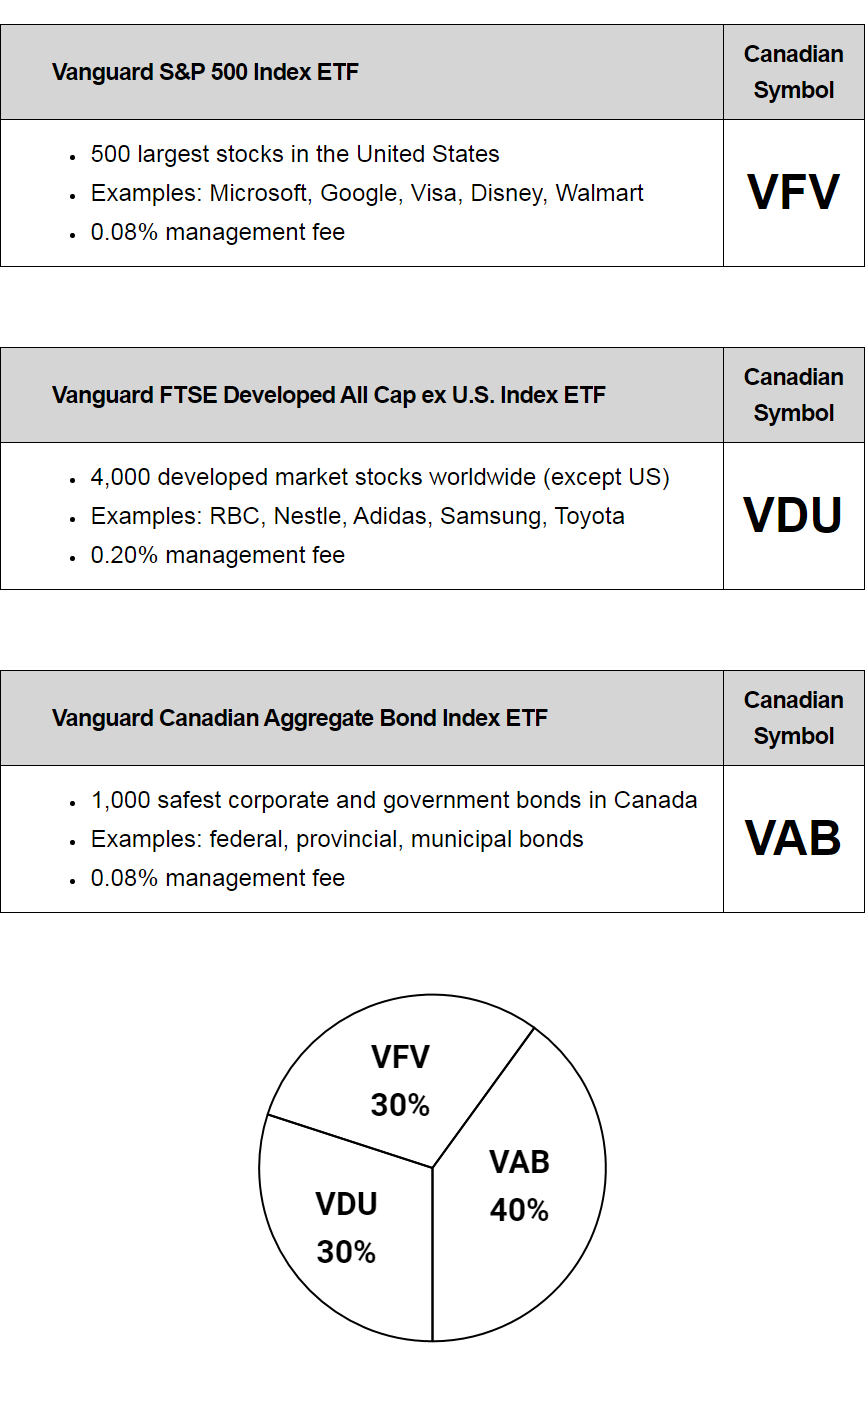 2021 Best Canadian ETFs to Buy | Vanguard S&P 500 Index ETF (Canadian Symbol: VFV): 500 largest stocks in the United States; Examples: Microsoft, Google, Visa, Disney, Walmart; 0.08% management fee | Vanguard FTSE Developed All Cap ex U.S. Index ETF (Canadian Symbol: VDU): 4,000 developed market stocks worldwide (except US); Examples: RBC, Nestle, Adidas, Samsung, Toyota; 0.20% management fee | Vanguard Canadian Aggregate Bond Index ETF (Canadian Symbol: VAB): 1,000 safest corporate and government bonds in Canada; Examples: federal, provincial, municipal bonds; 0.08% management fee | Pie Chart: 30% VFV / 30% VDU / 40% VAB